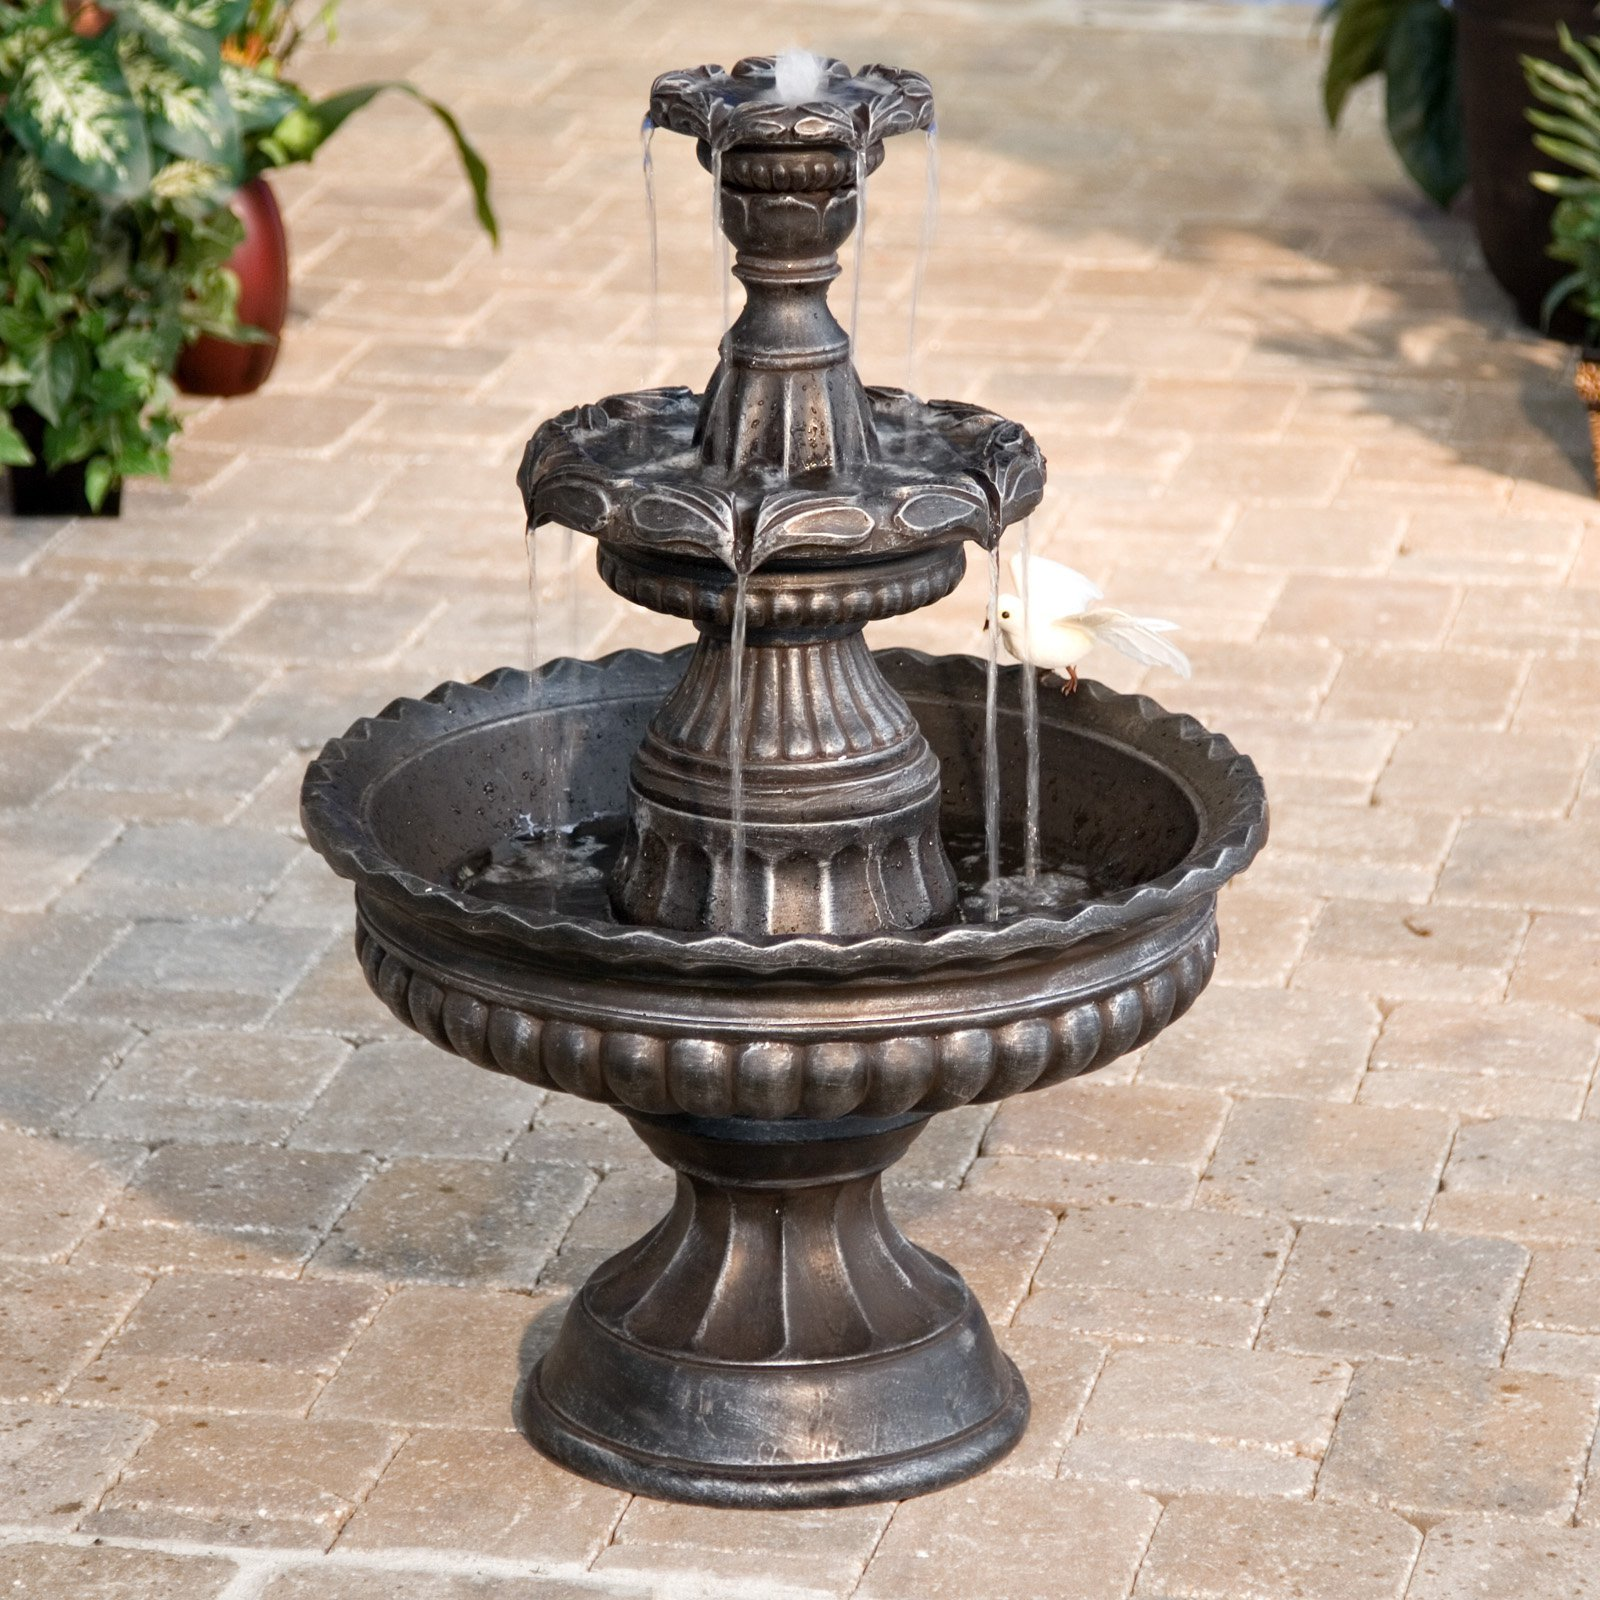 Etonnant Garden Classic 3 Tier Outdoor Fountain   Walmart.com